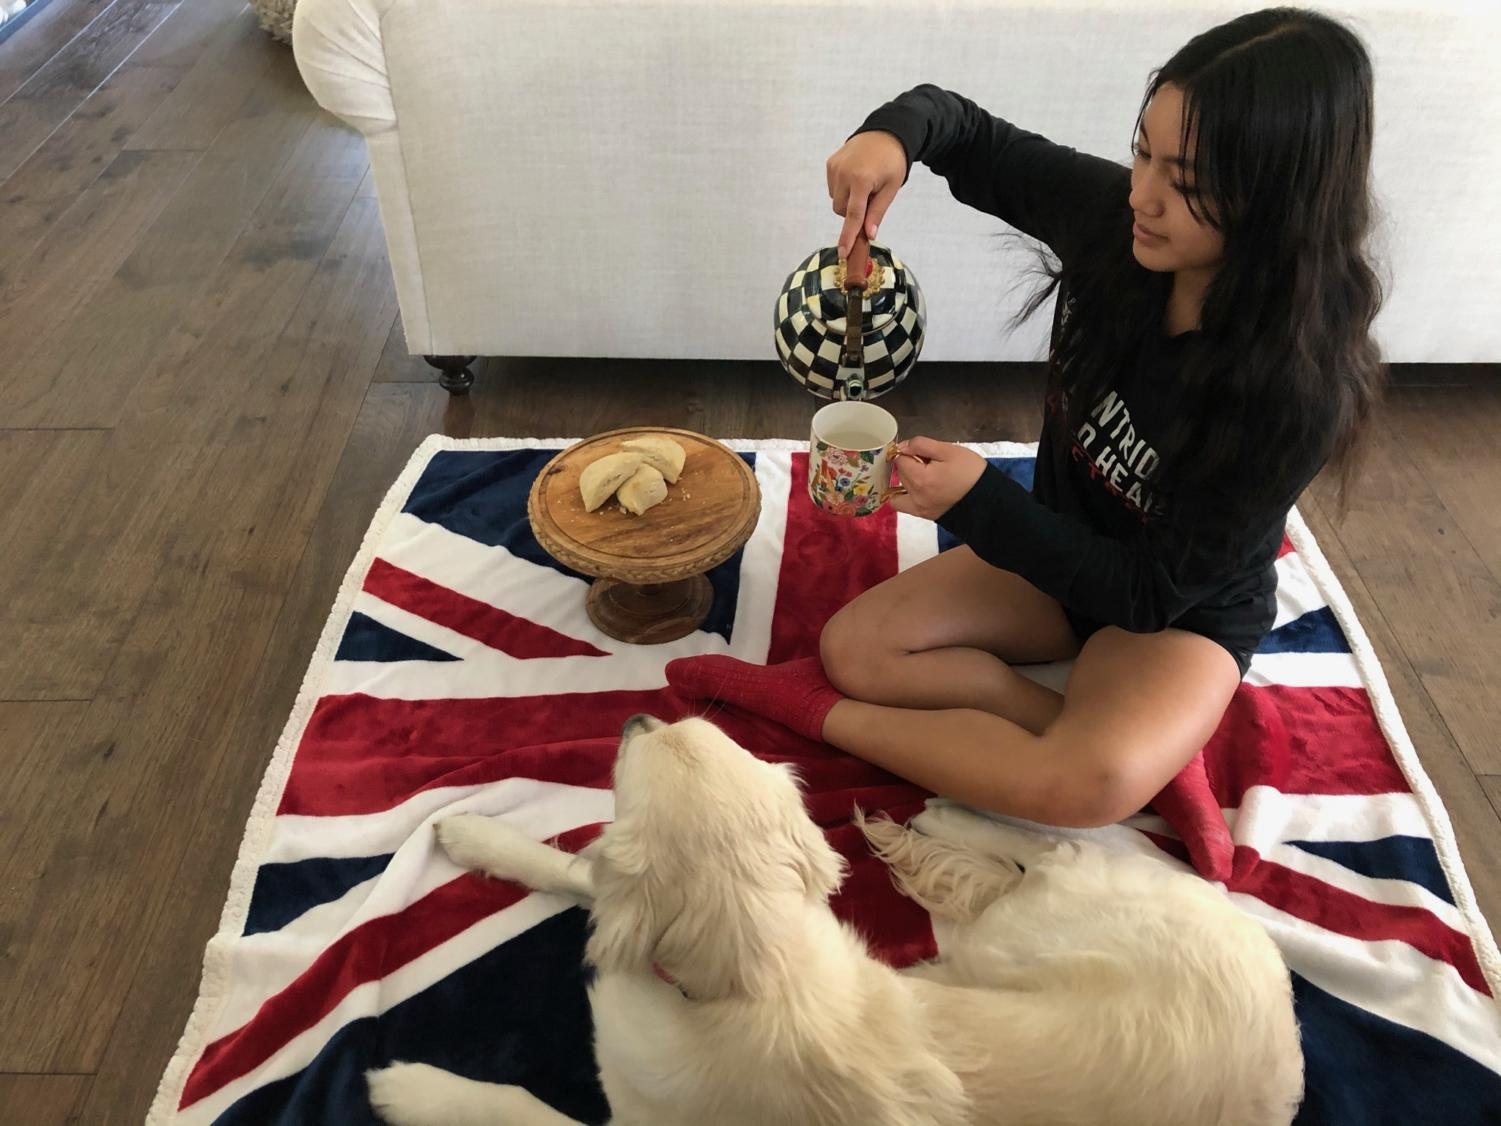 Fancy teapot? Check. Scones? Check. Union Jack blanket? Check. With the English essentials in place, Angelina Cao '22 settles down for a pretend tea at Buckingham Palace.